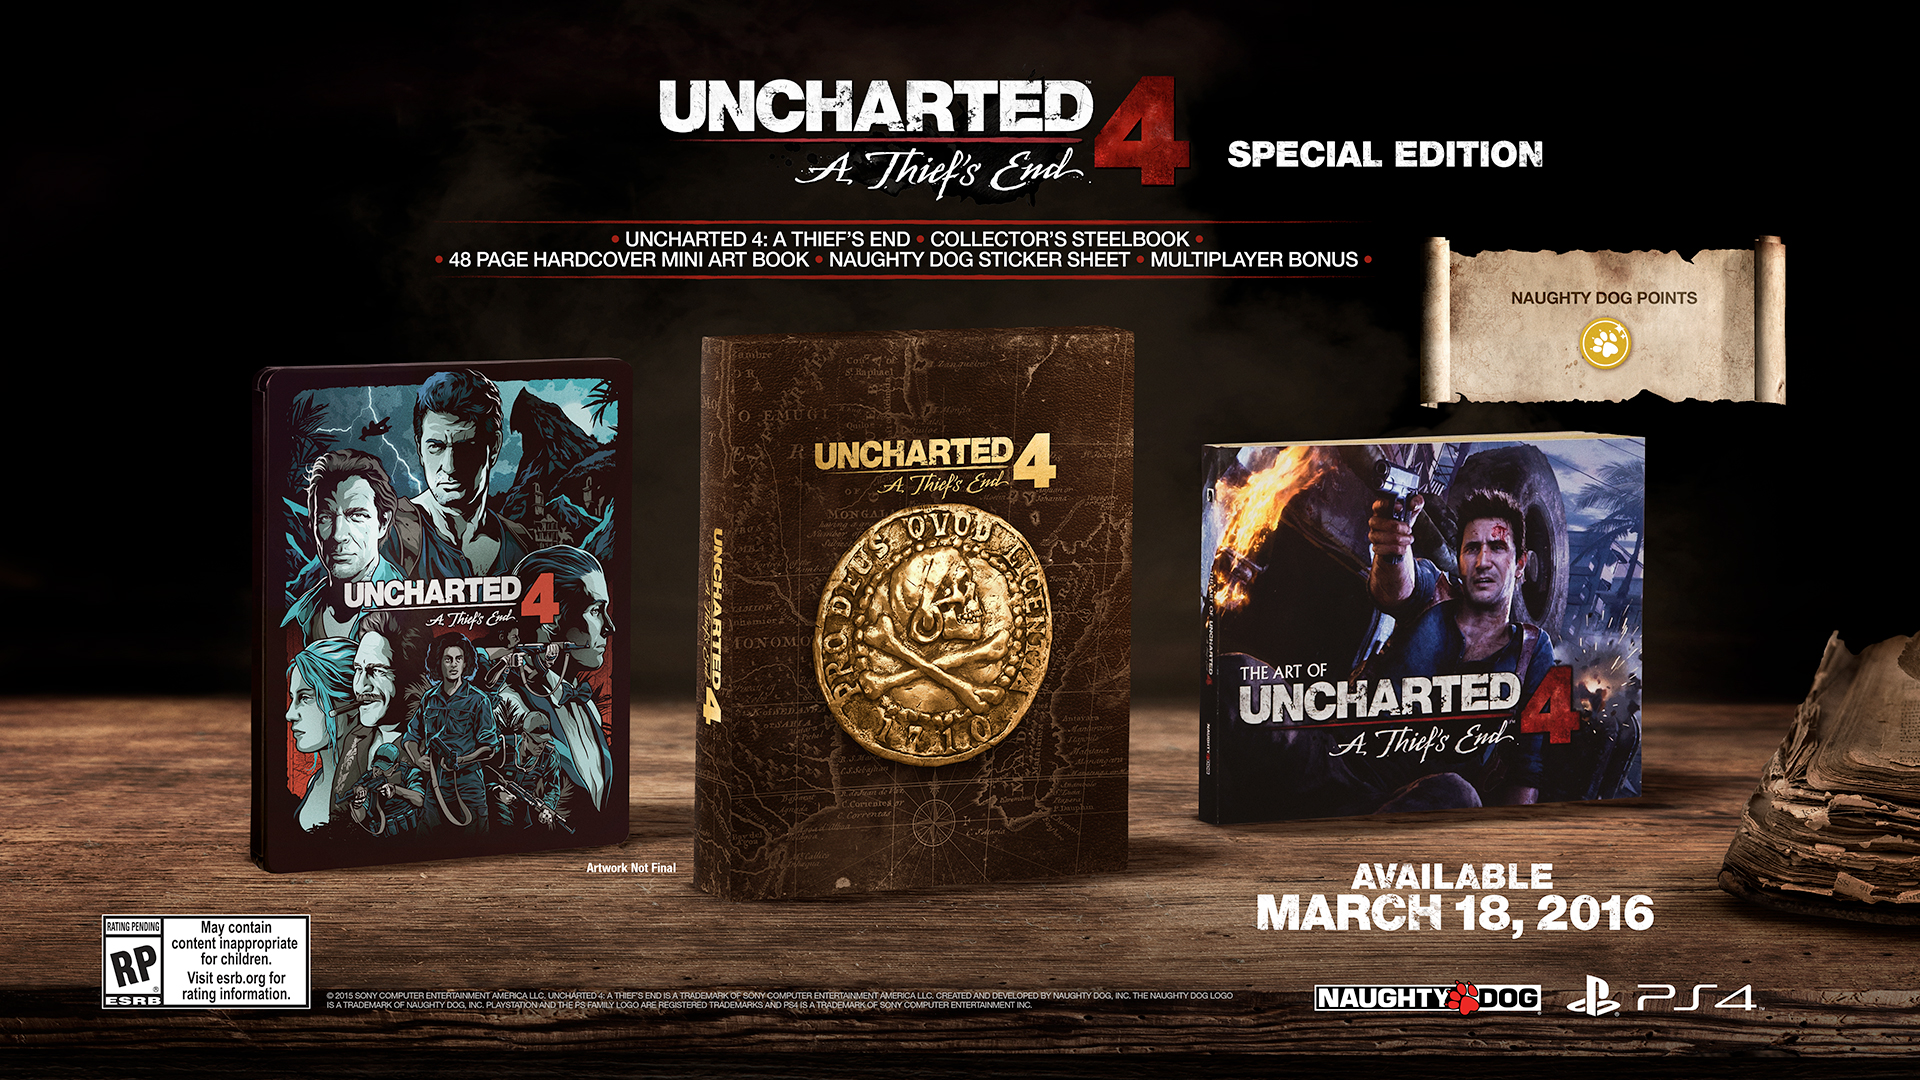 uncharted-4-a-thiefs-end-special-edition